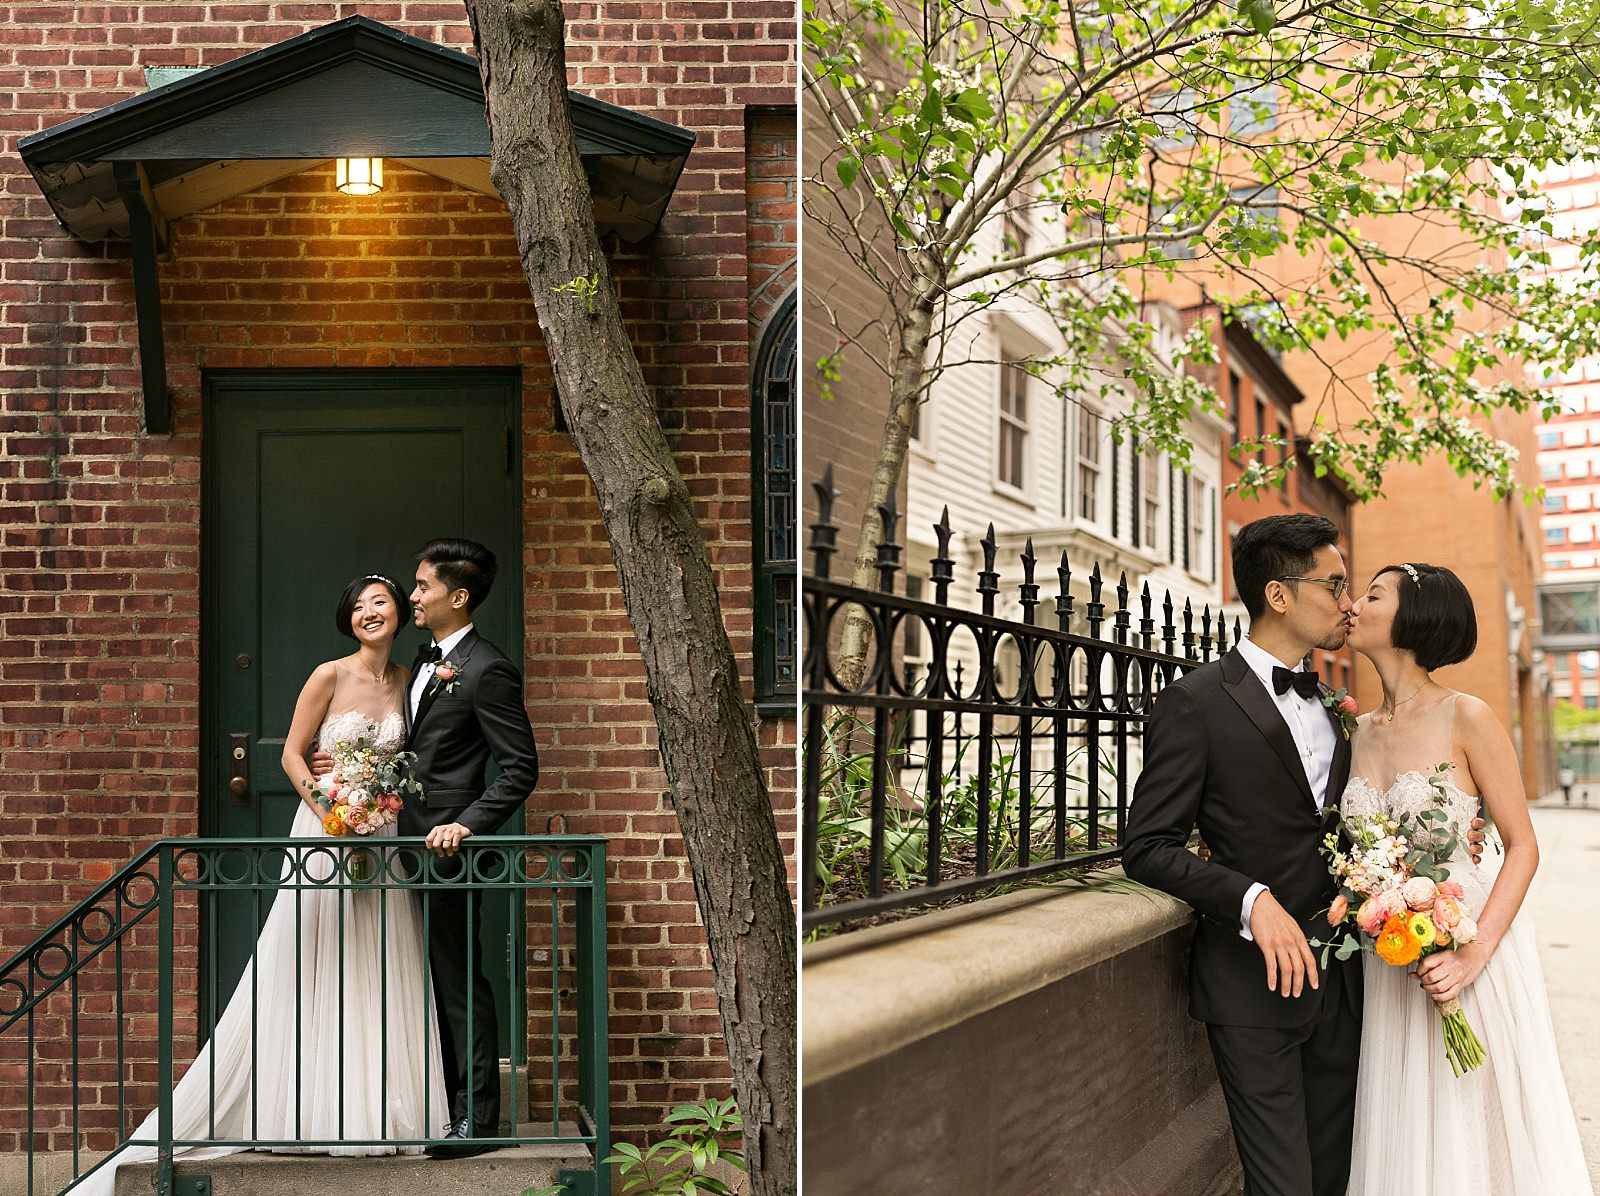 NYC_Wedding_Photographer_JeNi_Wed_30.jpg